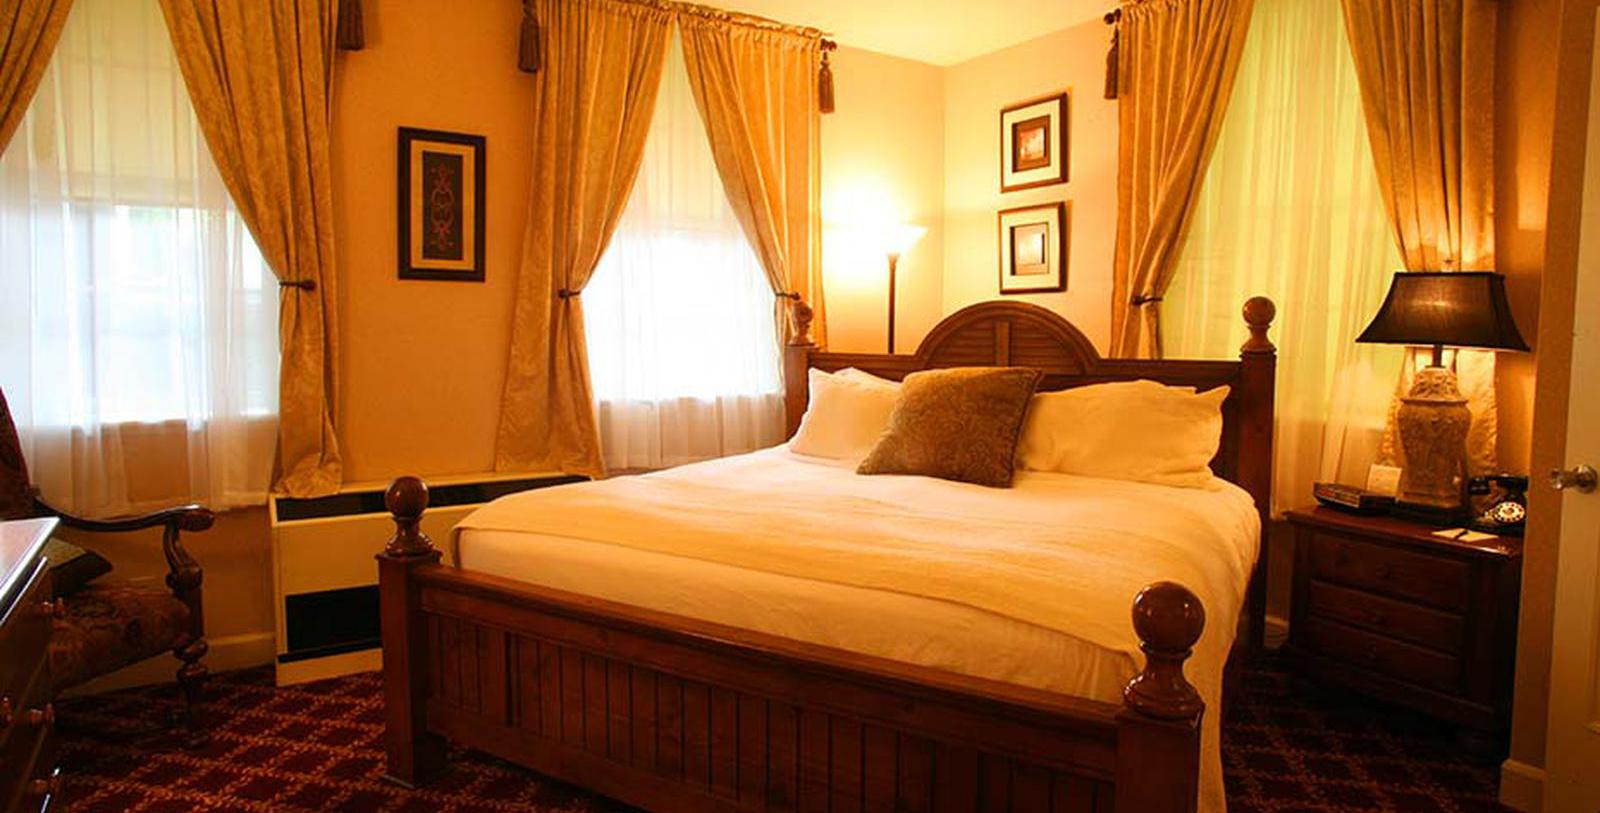 Image of Guestroom at The Martha Washington Hotel & Spa, 1832, Member of Historic Hotels of America, in Abingdon, Virginia, Location Map